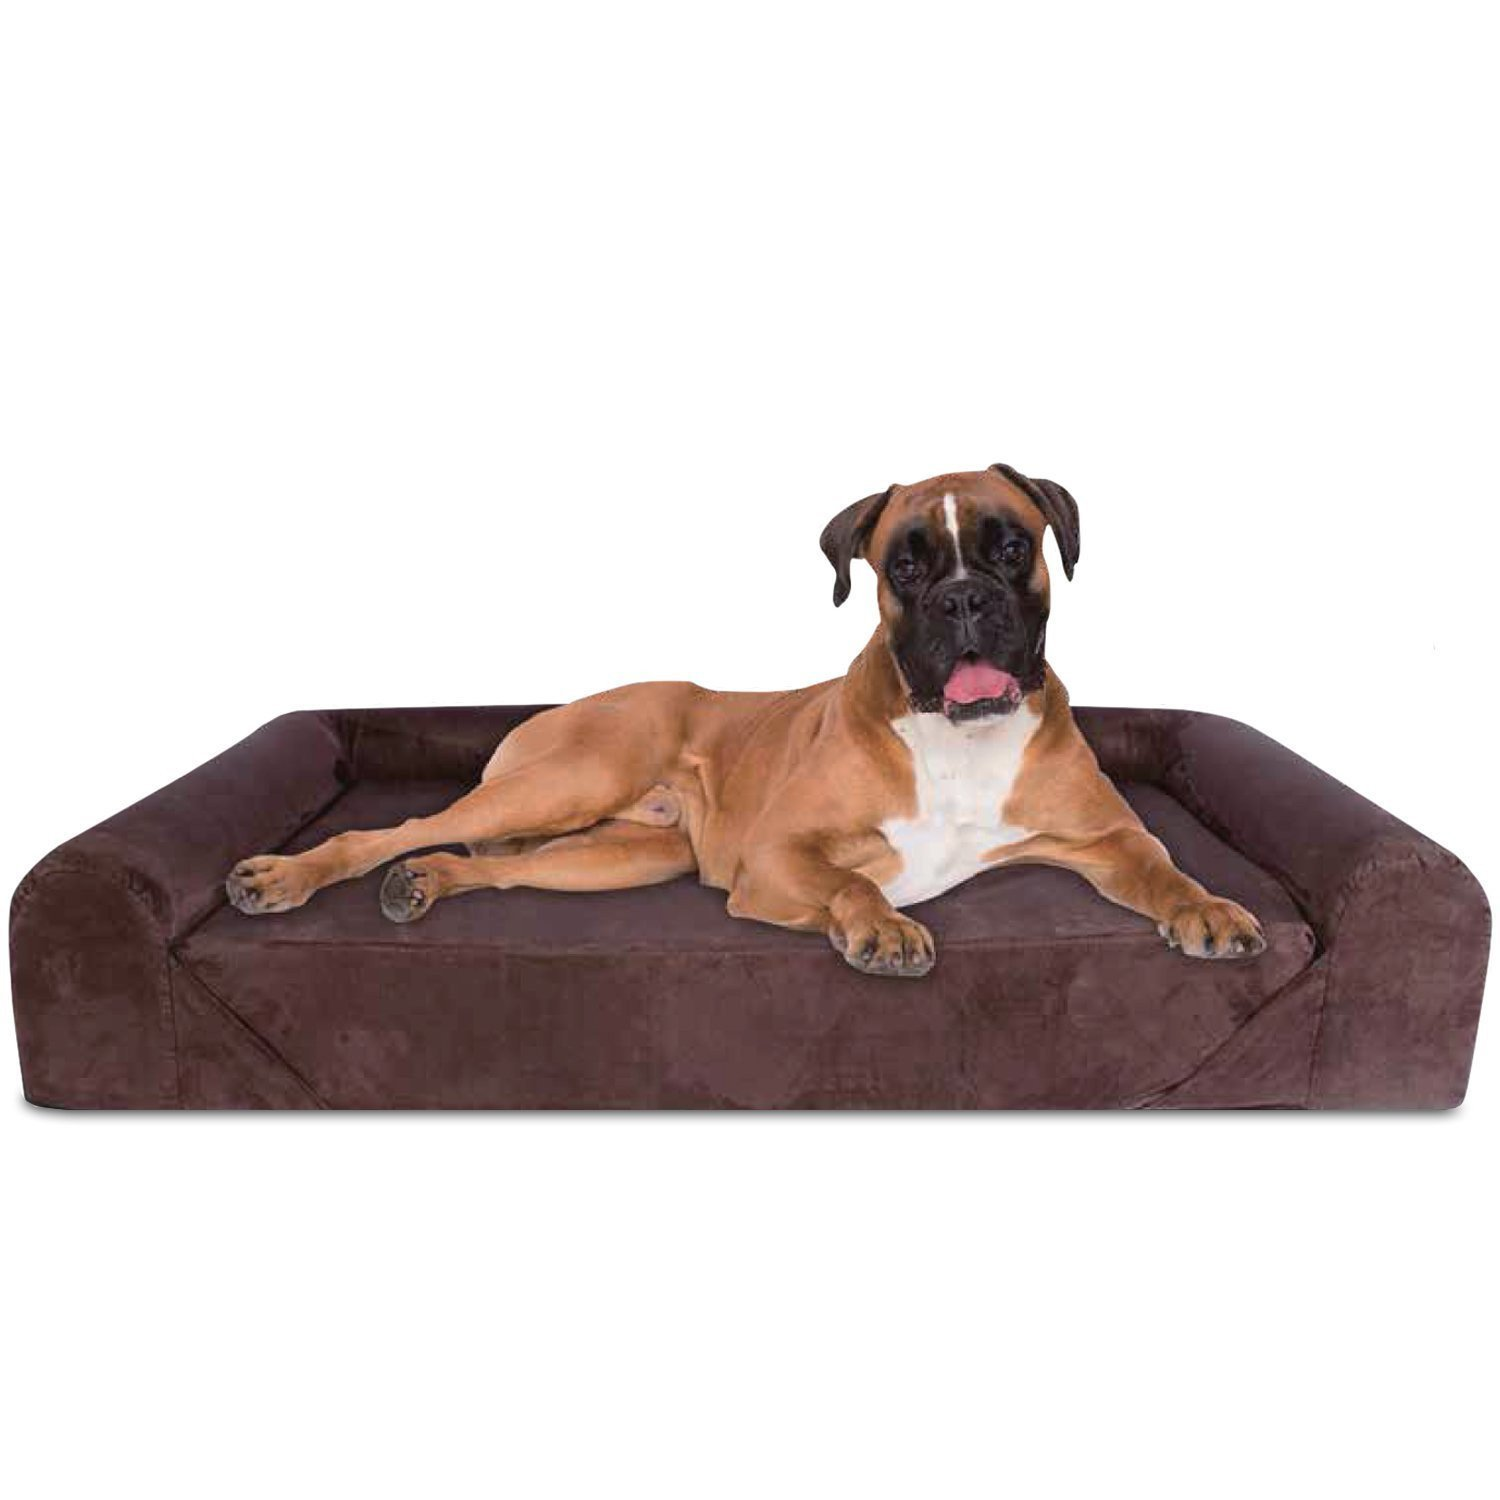 Pleasing Kopeks Deluxe Extra Large Dog Sofa Bed Lounge With Orthopaedic Memory Foam Xl Brown Home Interior And Landscaping Palasignezvosmurscom